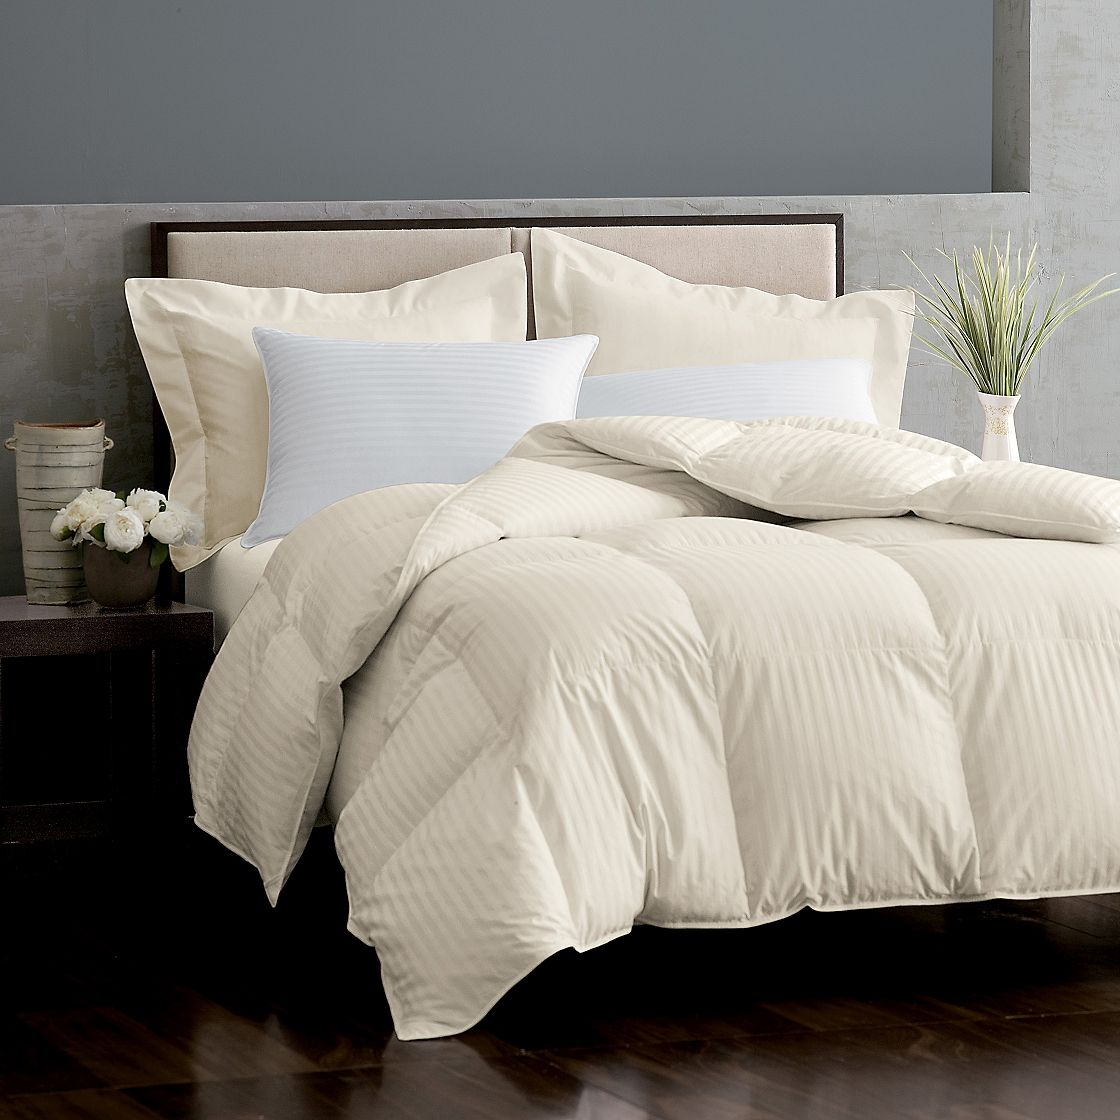 Welcome to Warm Things, the internet's best selection of affordable and high quality bed linens online. Find the perfect bedding set for your home now!